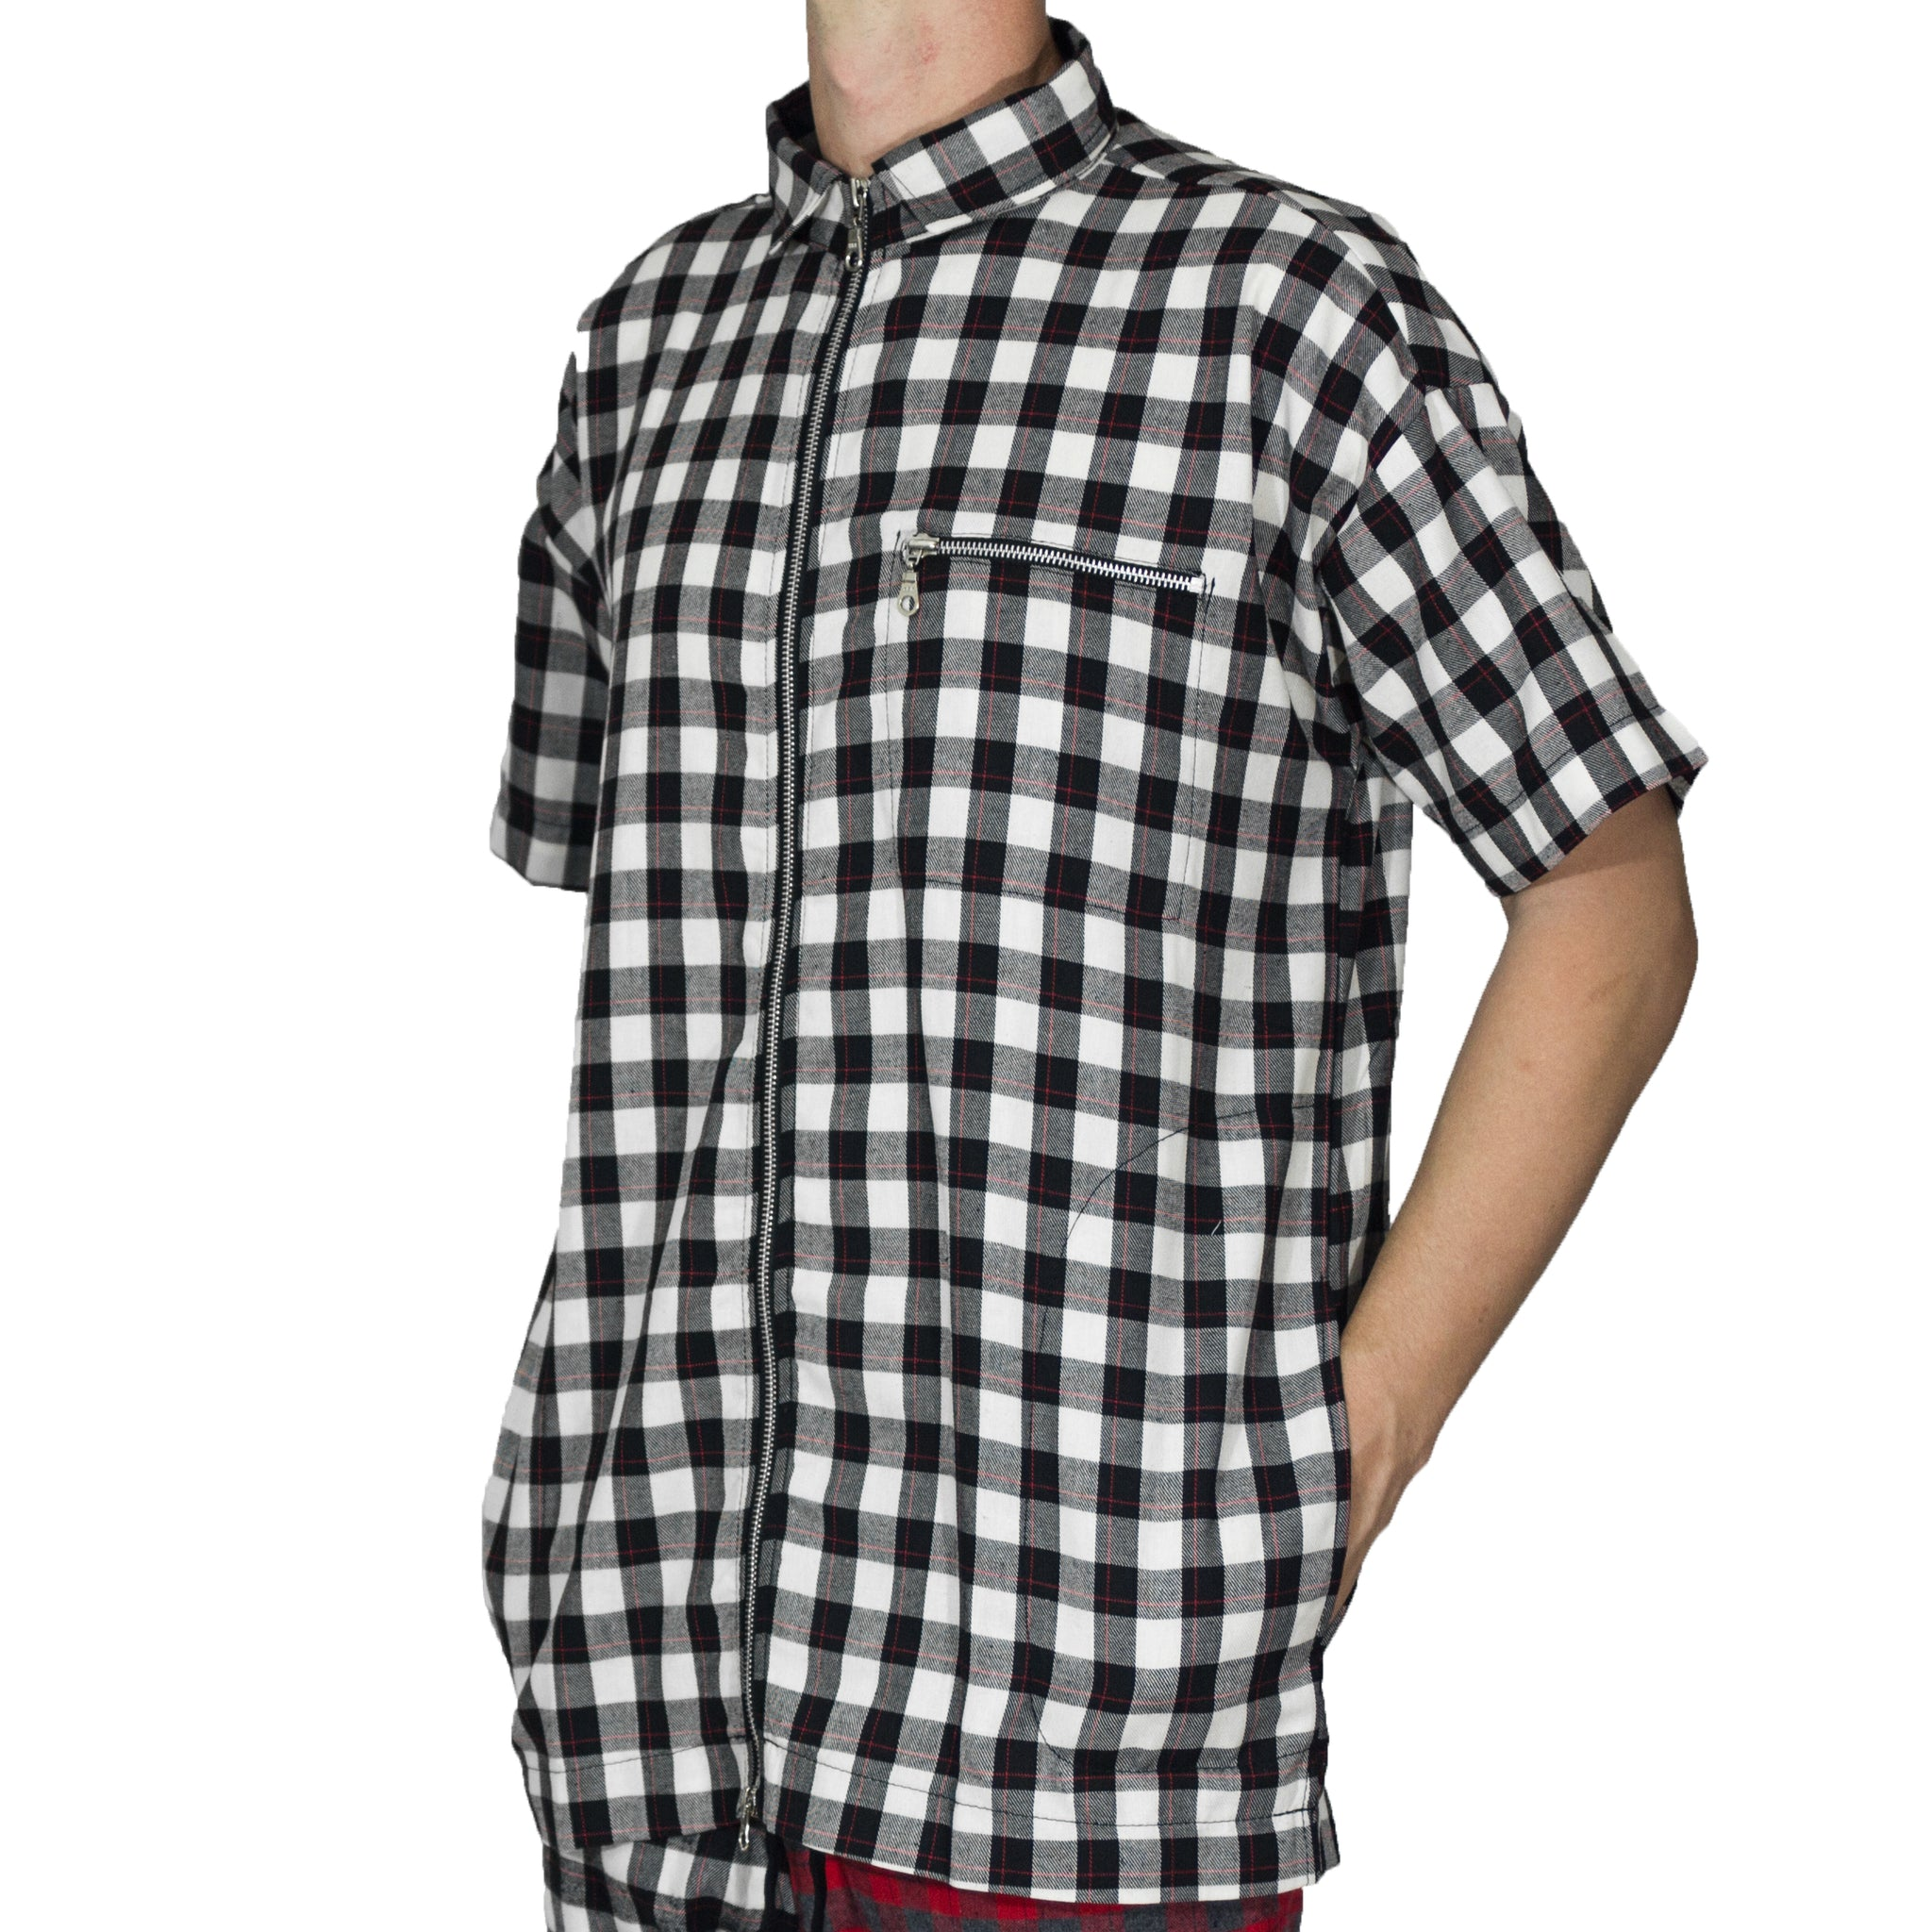 Zipup Shortsleeve : White/Black Flannel